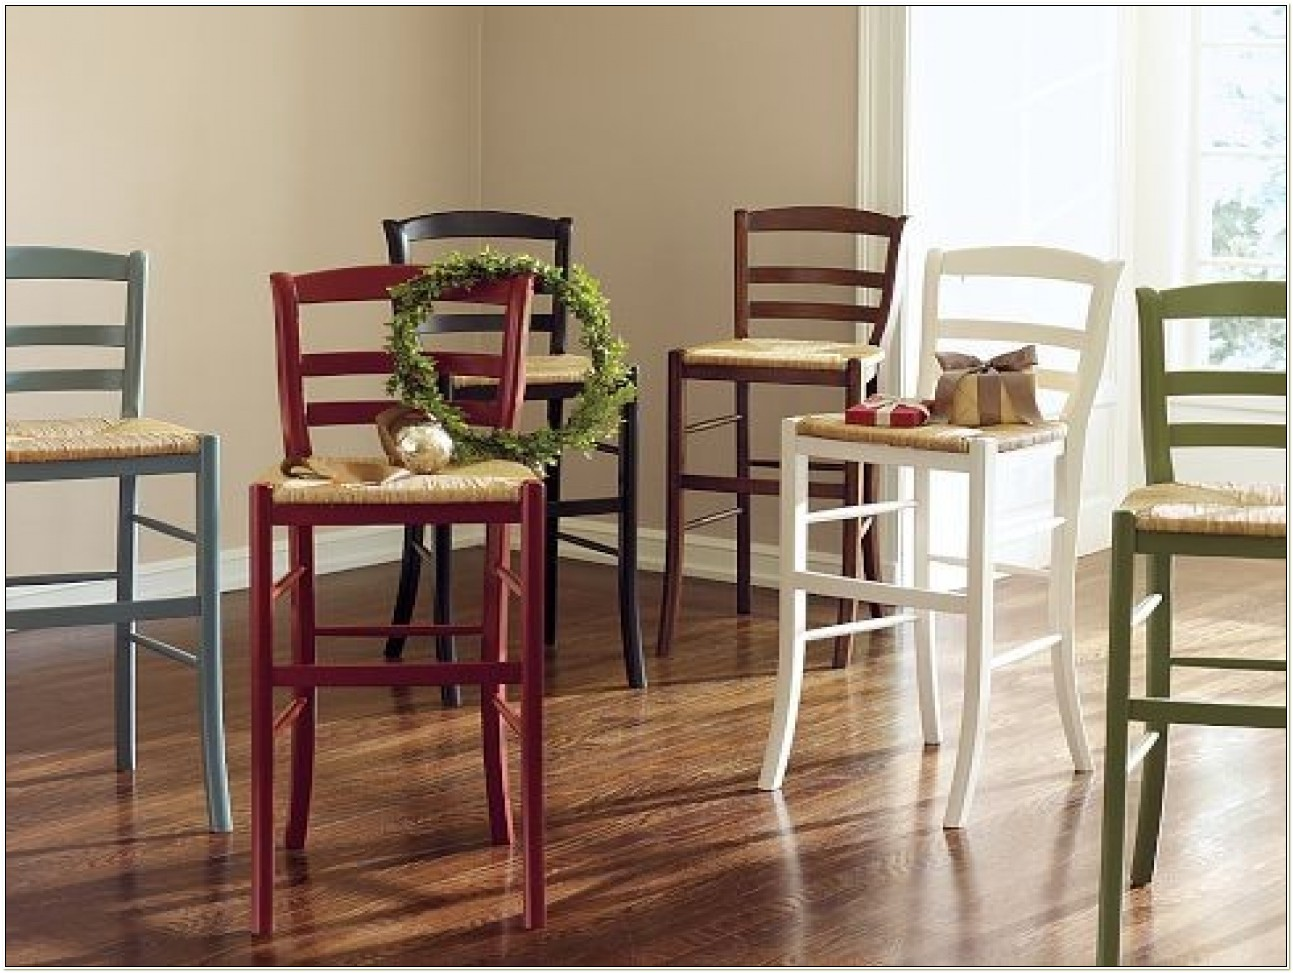 Pottery Barn Schoolhouse Chairs Craigslist